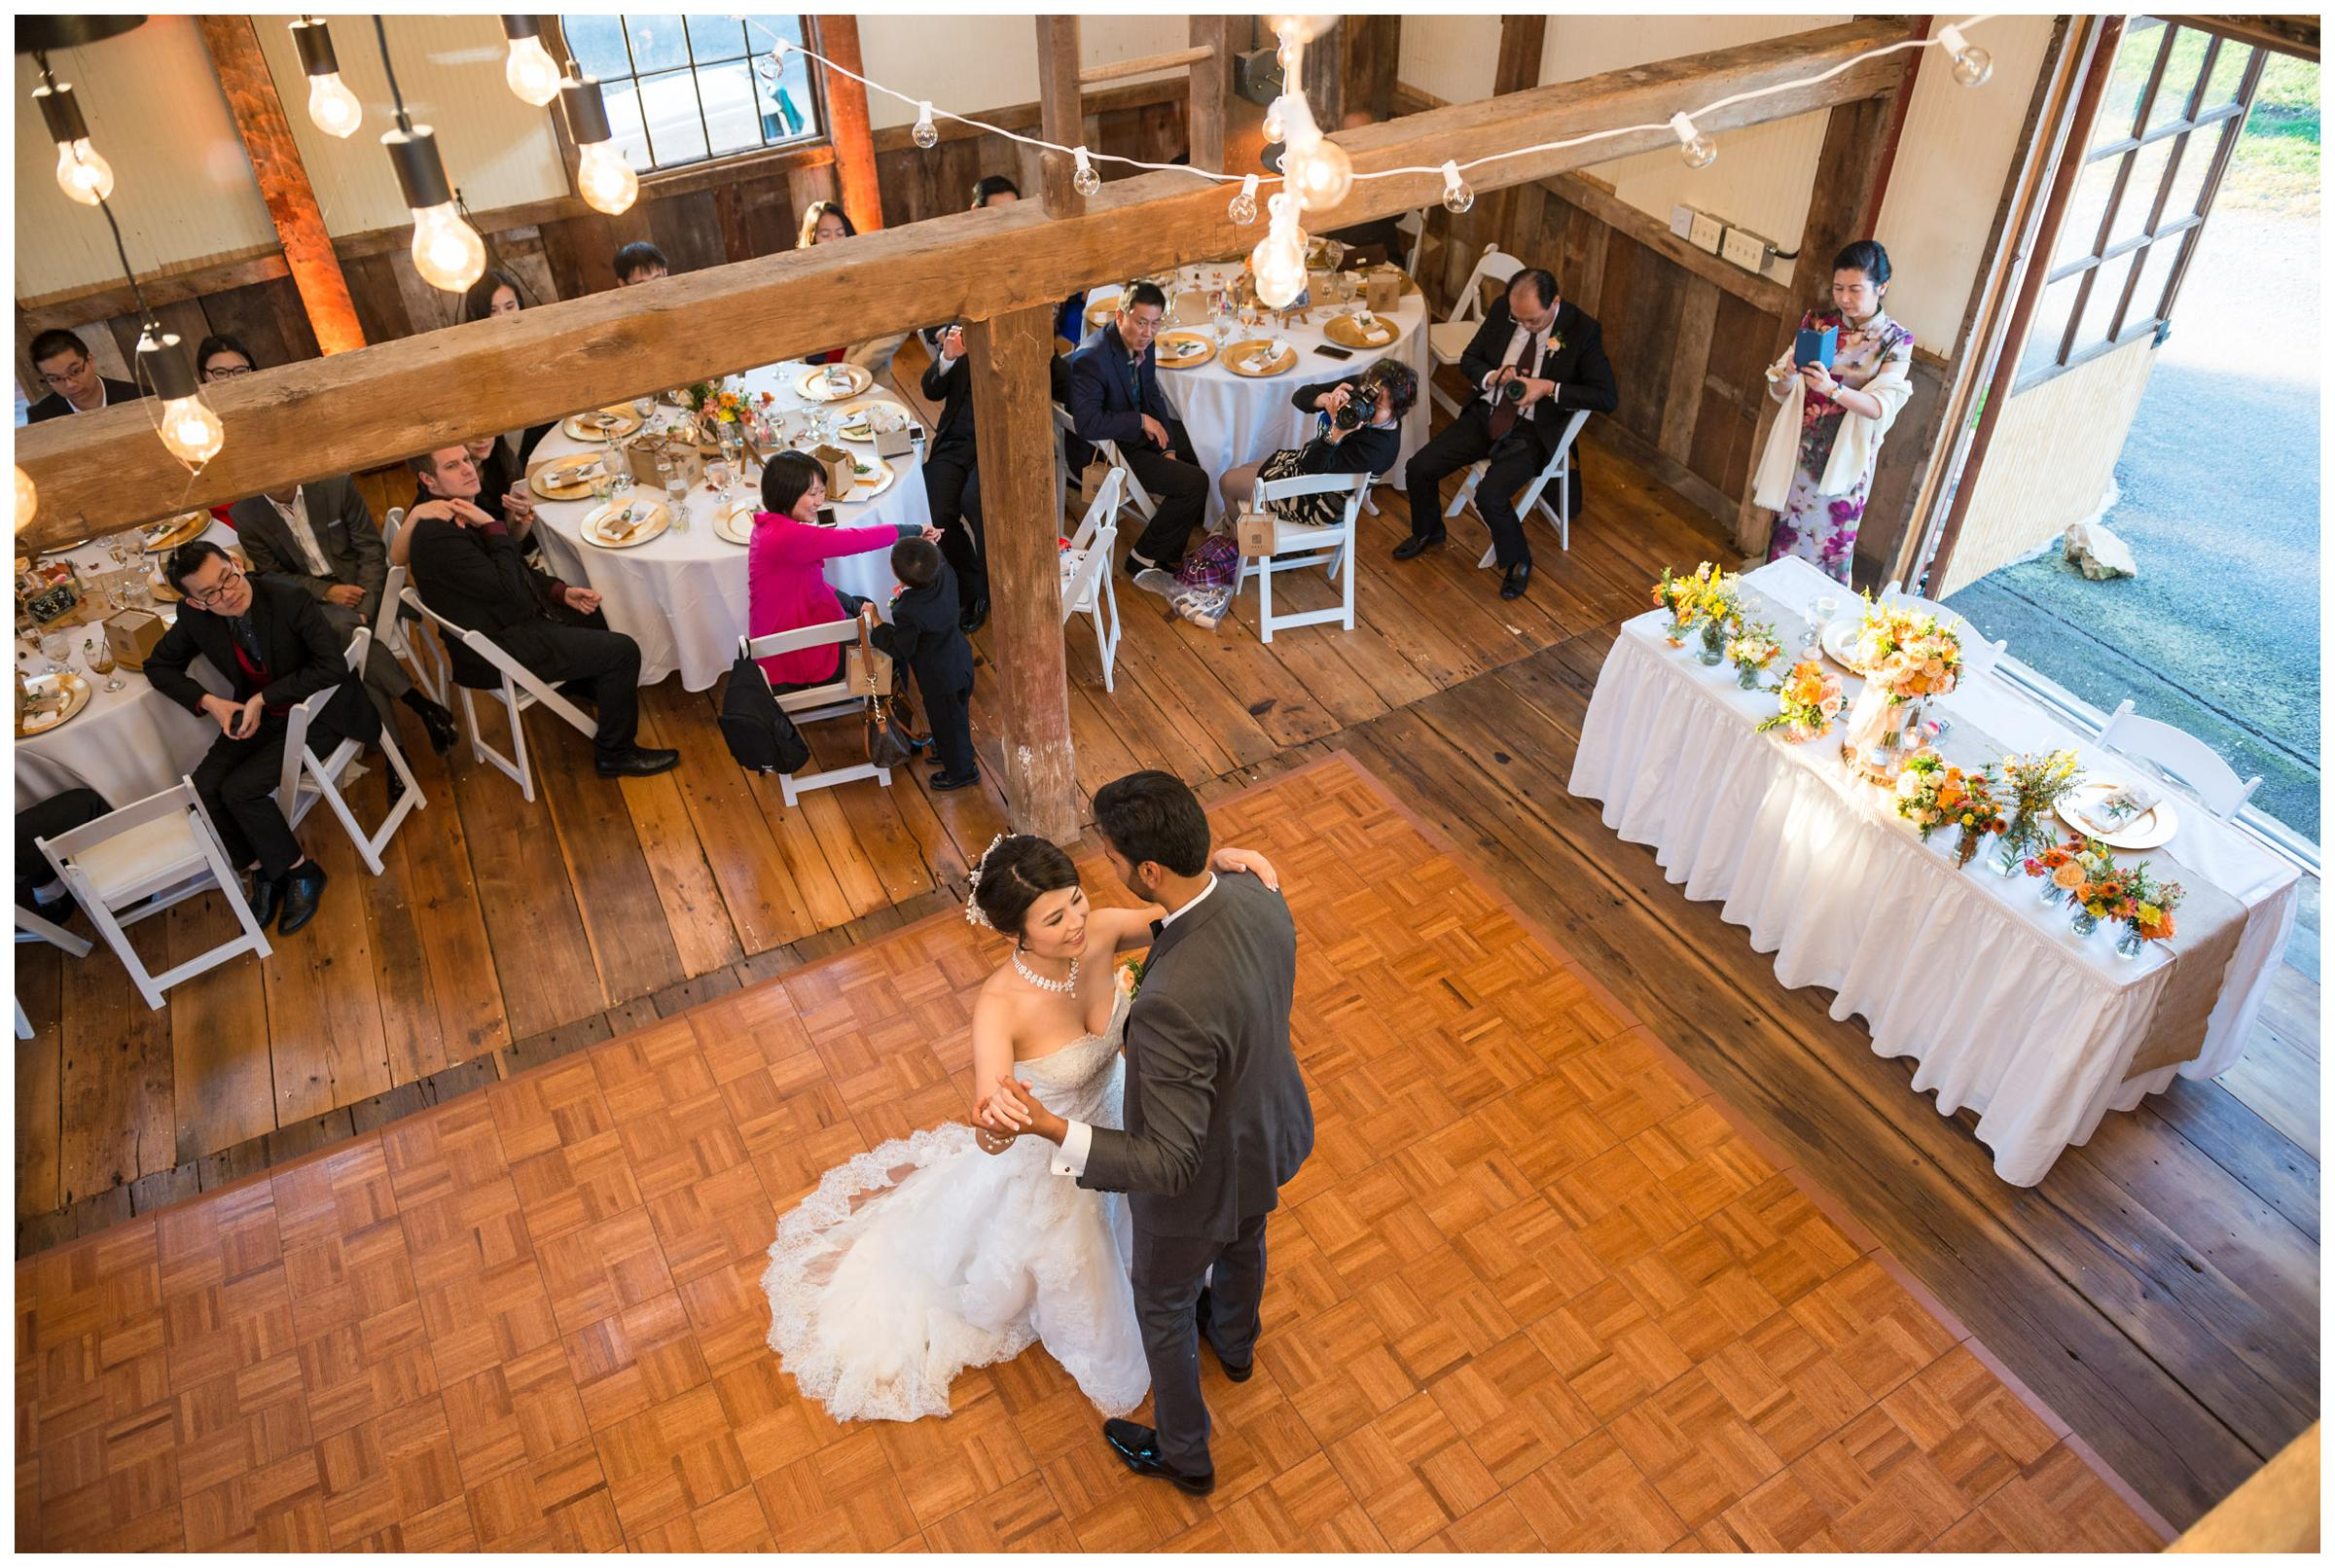 Bride and groom have their first dance during rustic barn reception.